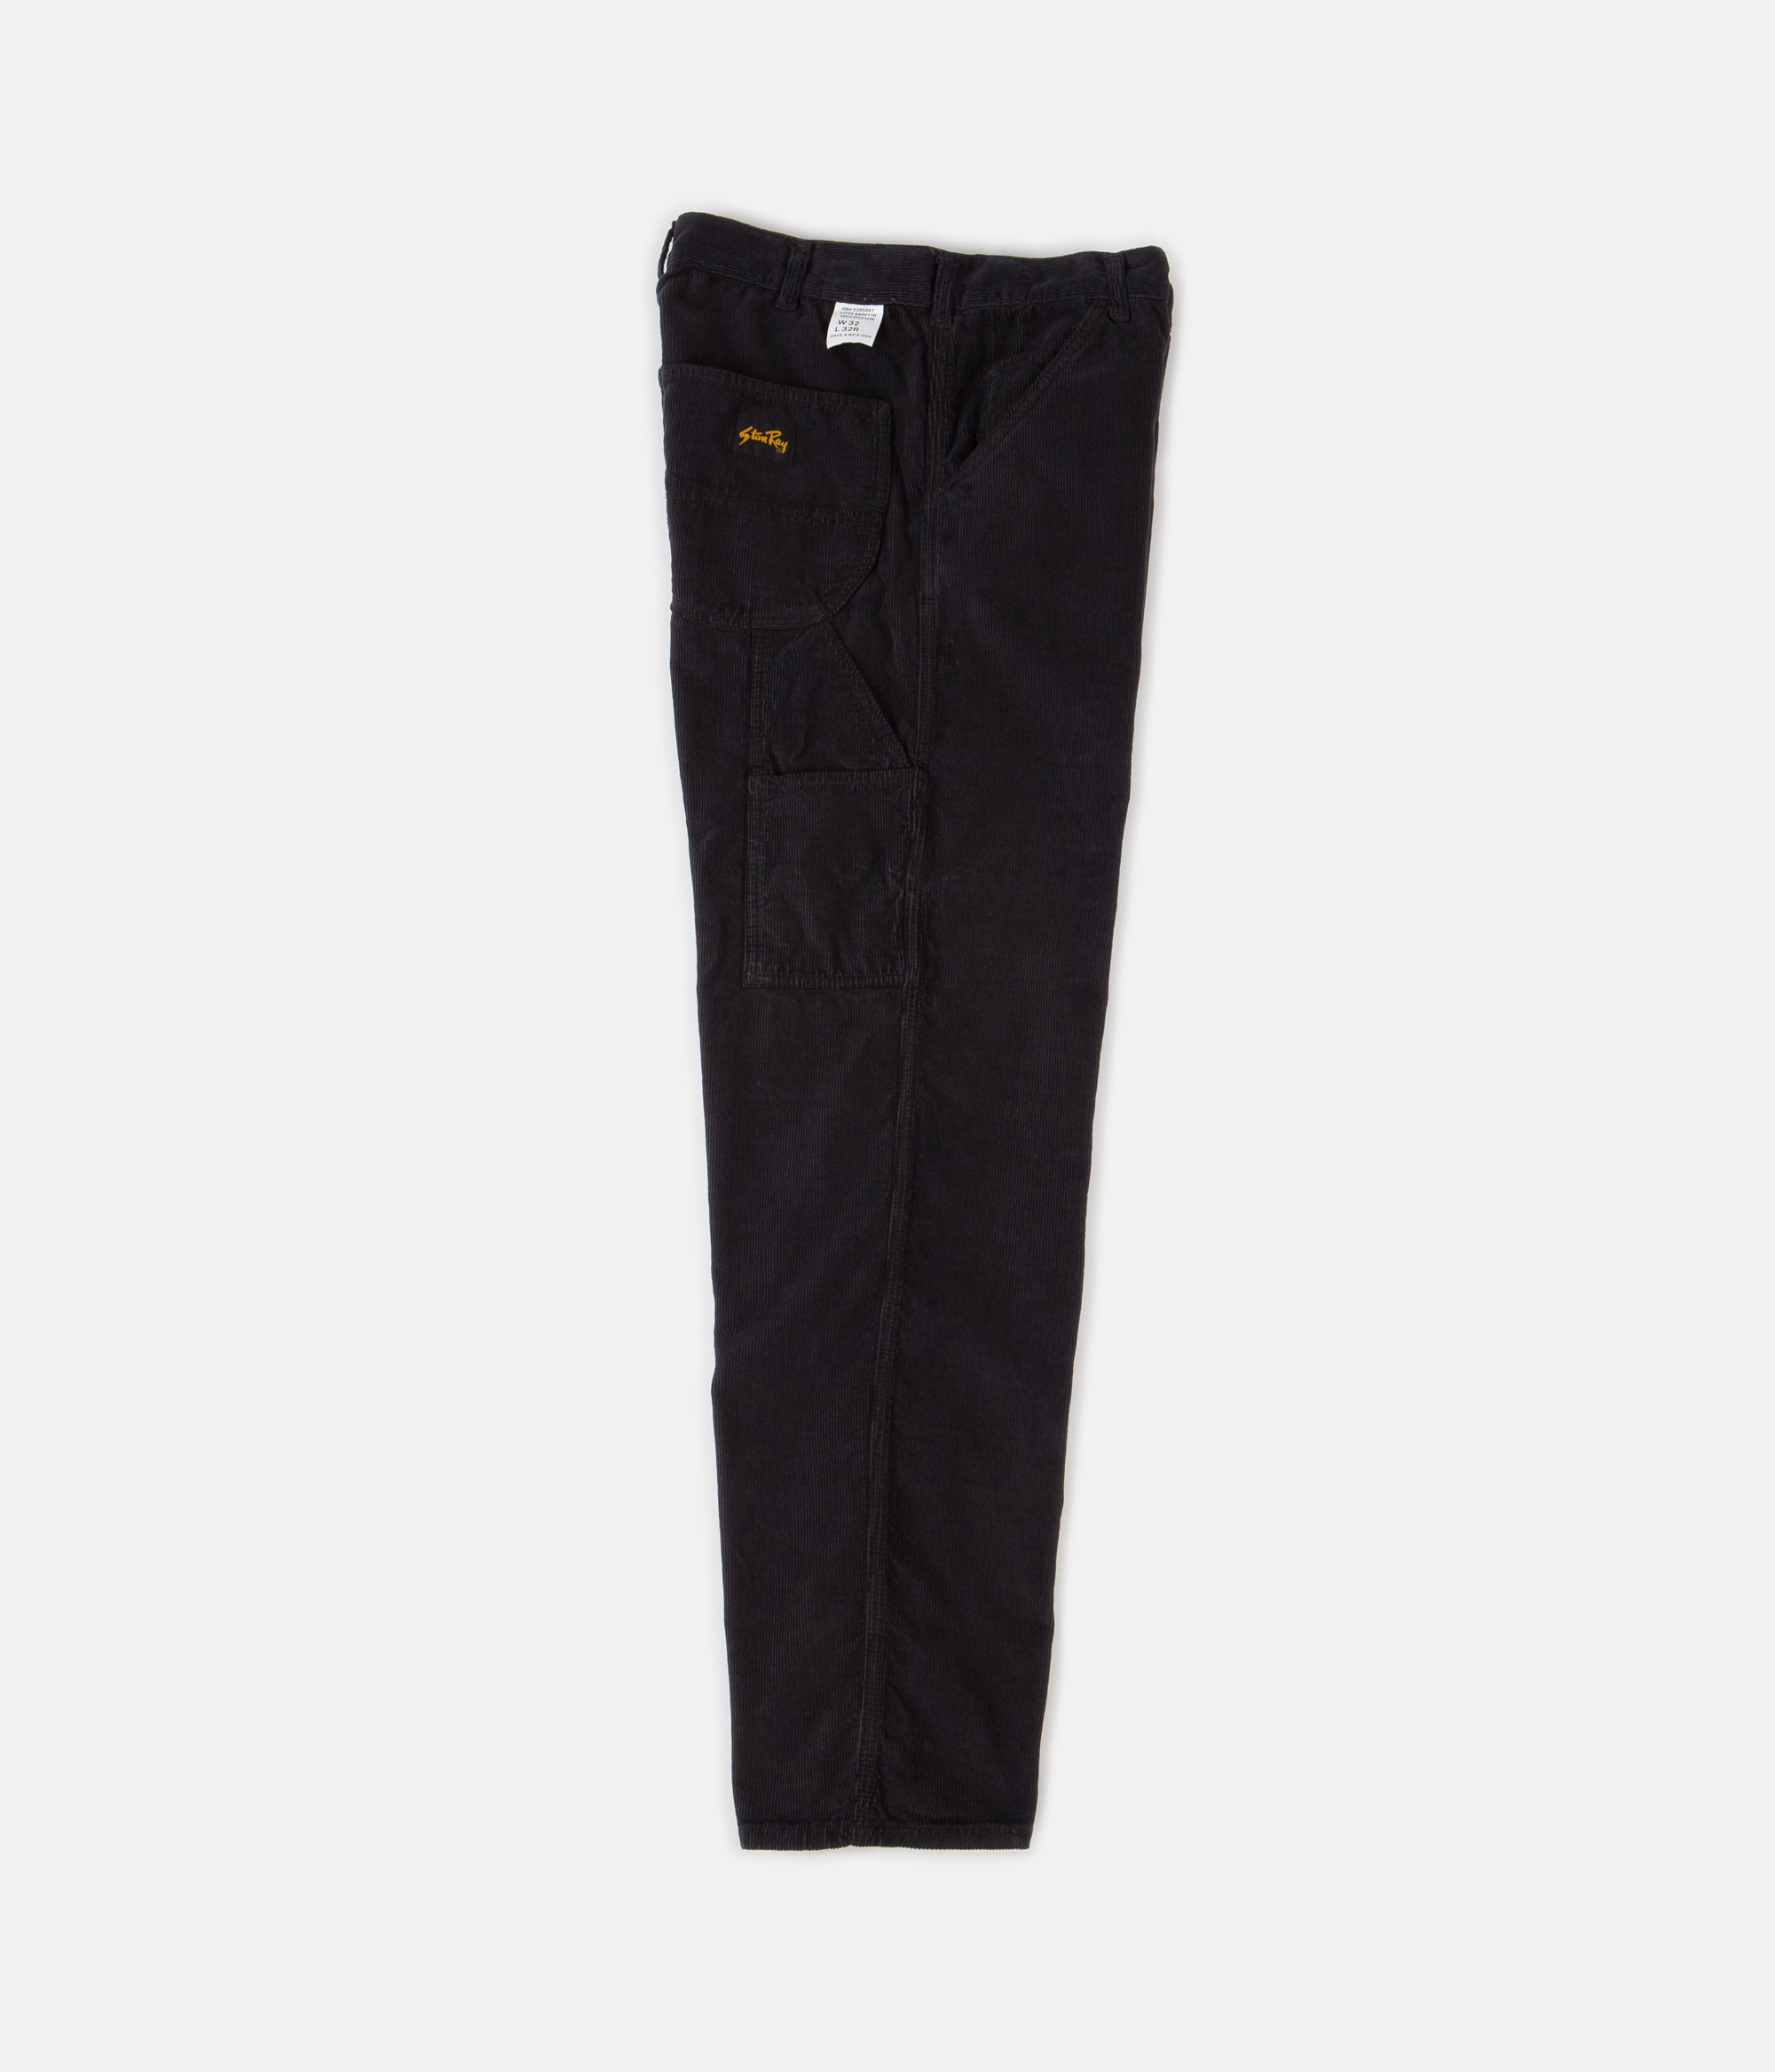 Stan Ray 80's Cord Painter Pants - Navy Cord